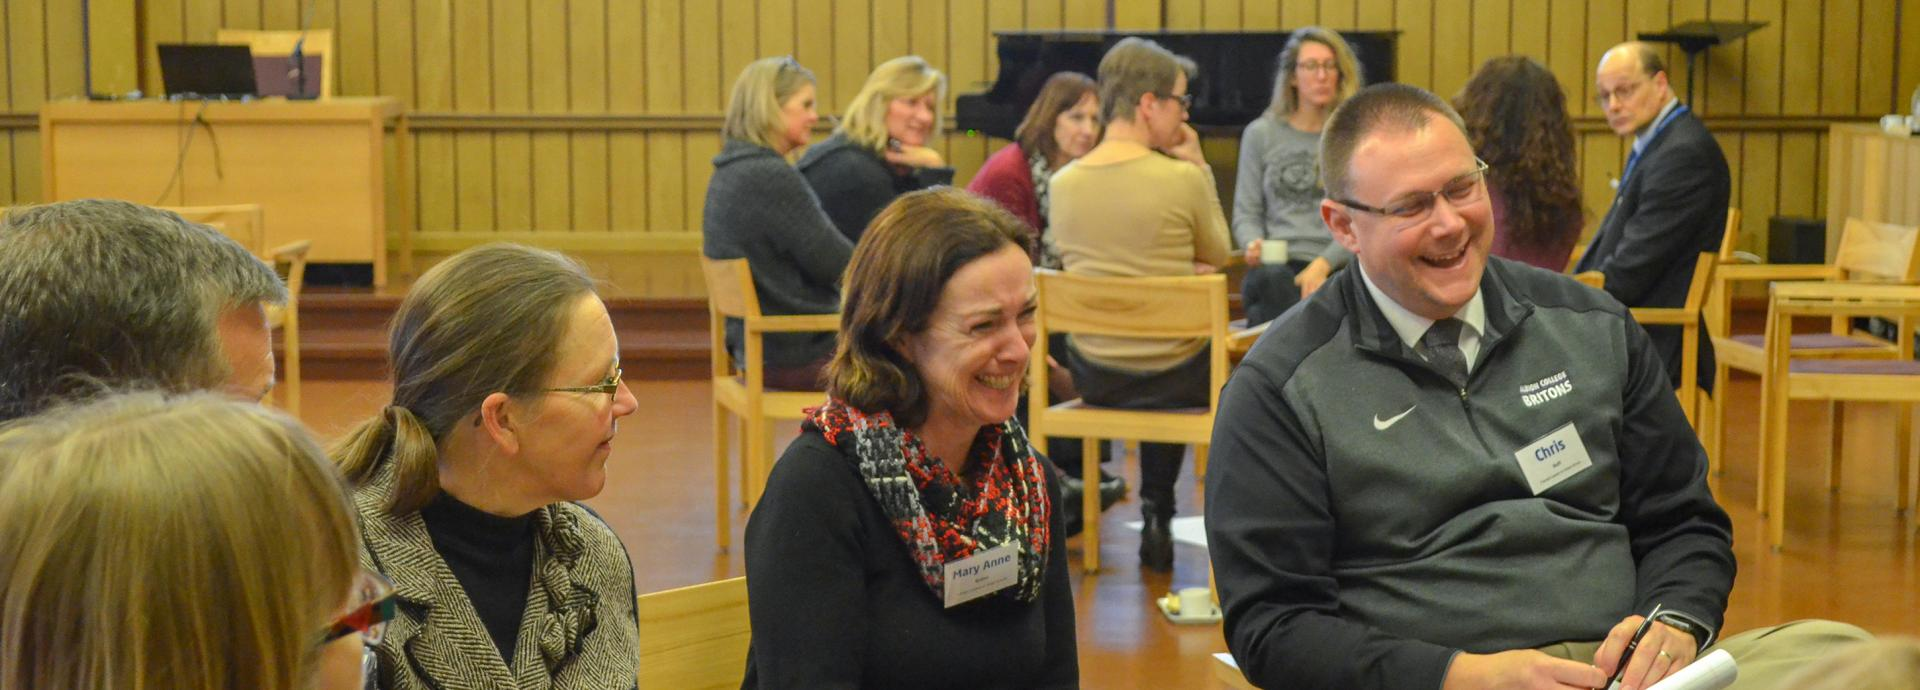 Two Fulbright Leaders for Global Schools participants laughing during a small group discussion in the Seminarium Festival hall at the University of Jyväskylä